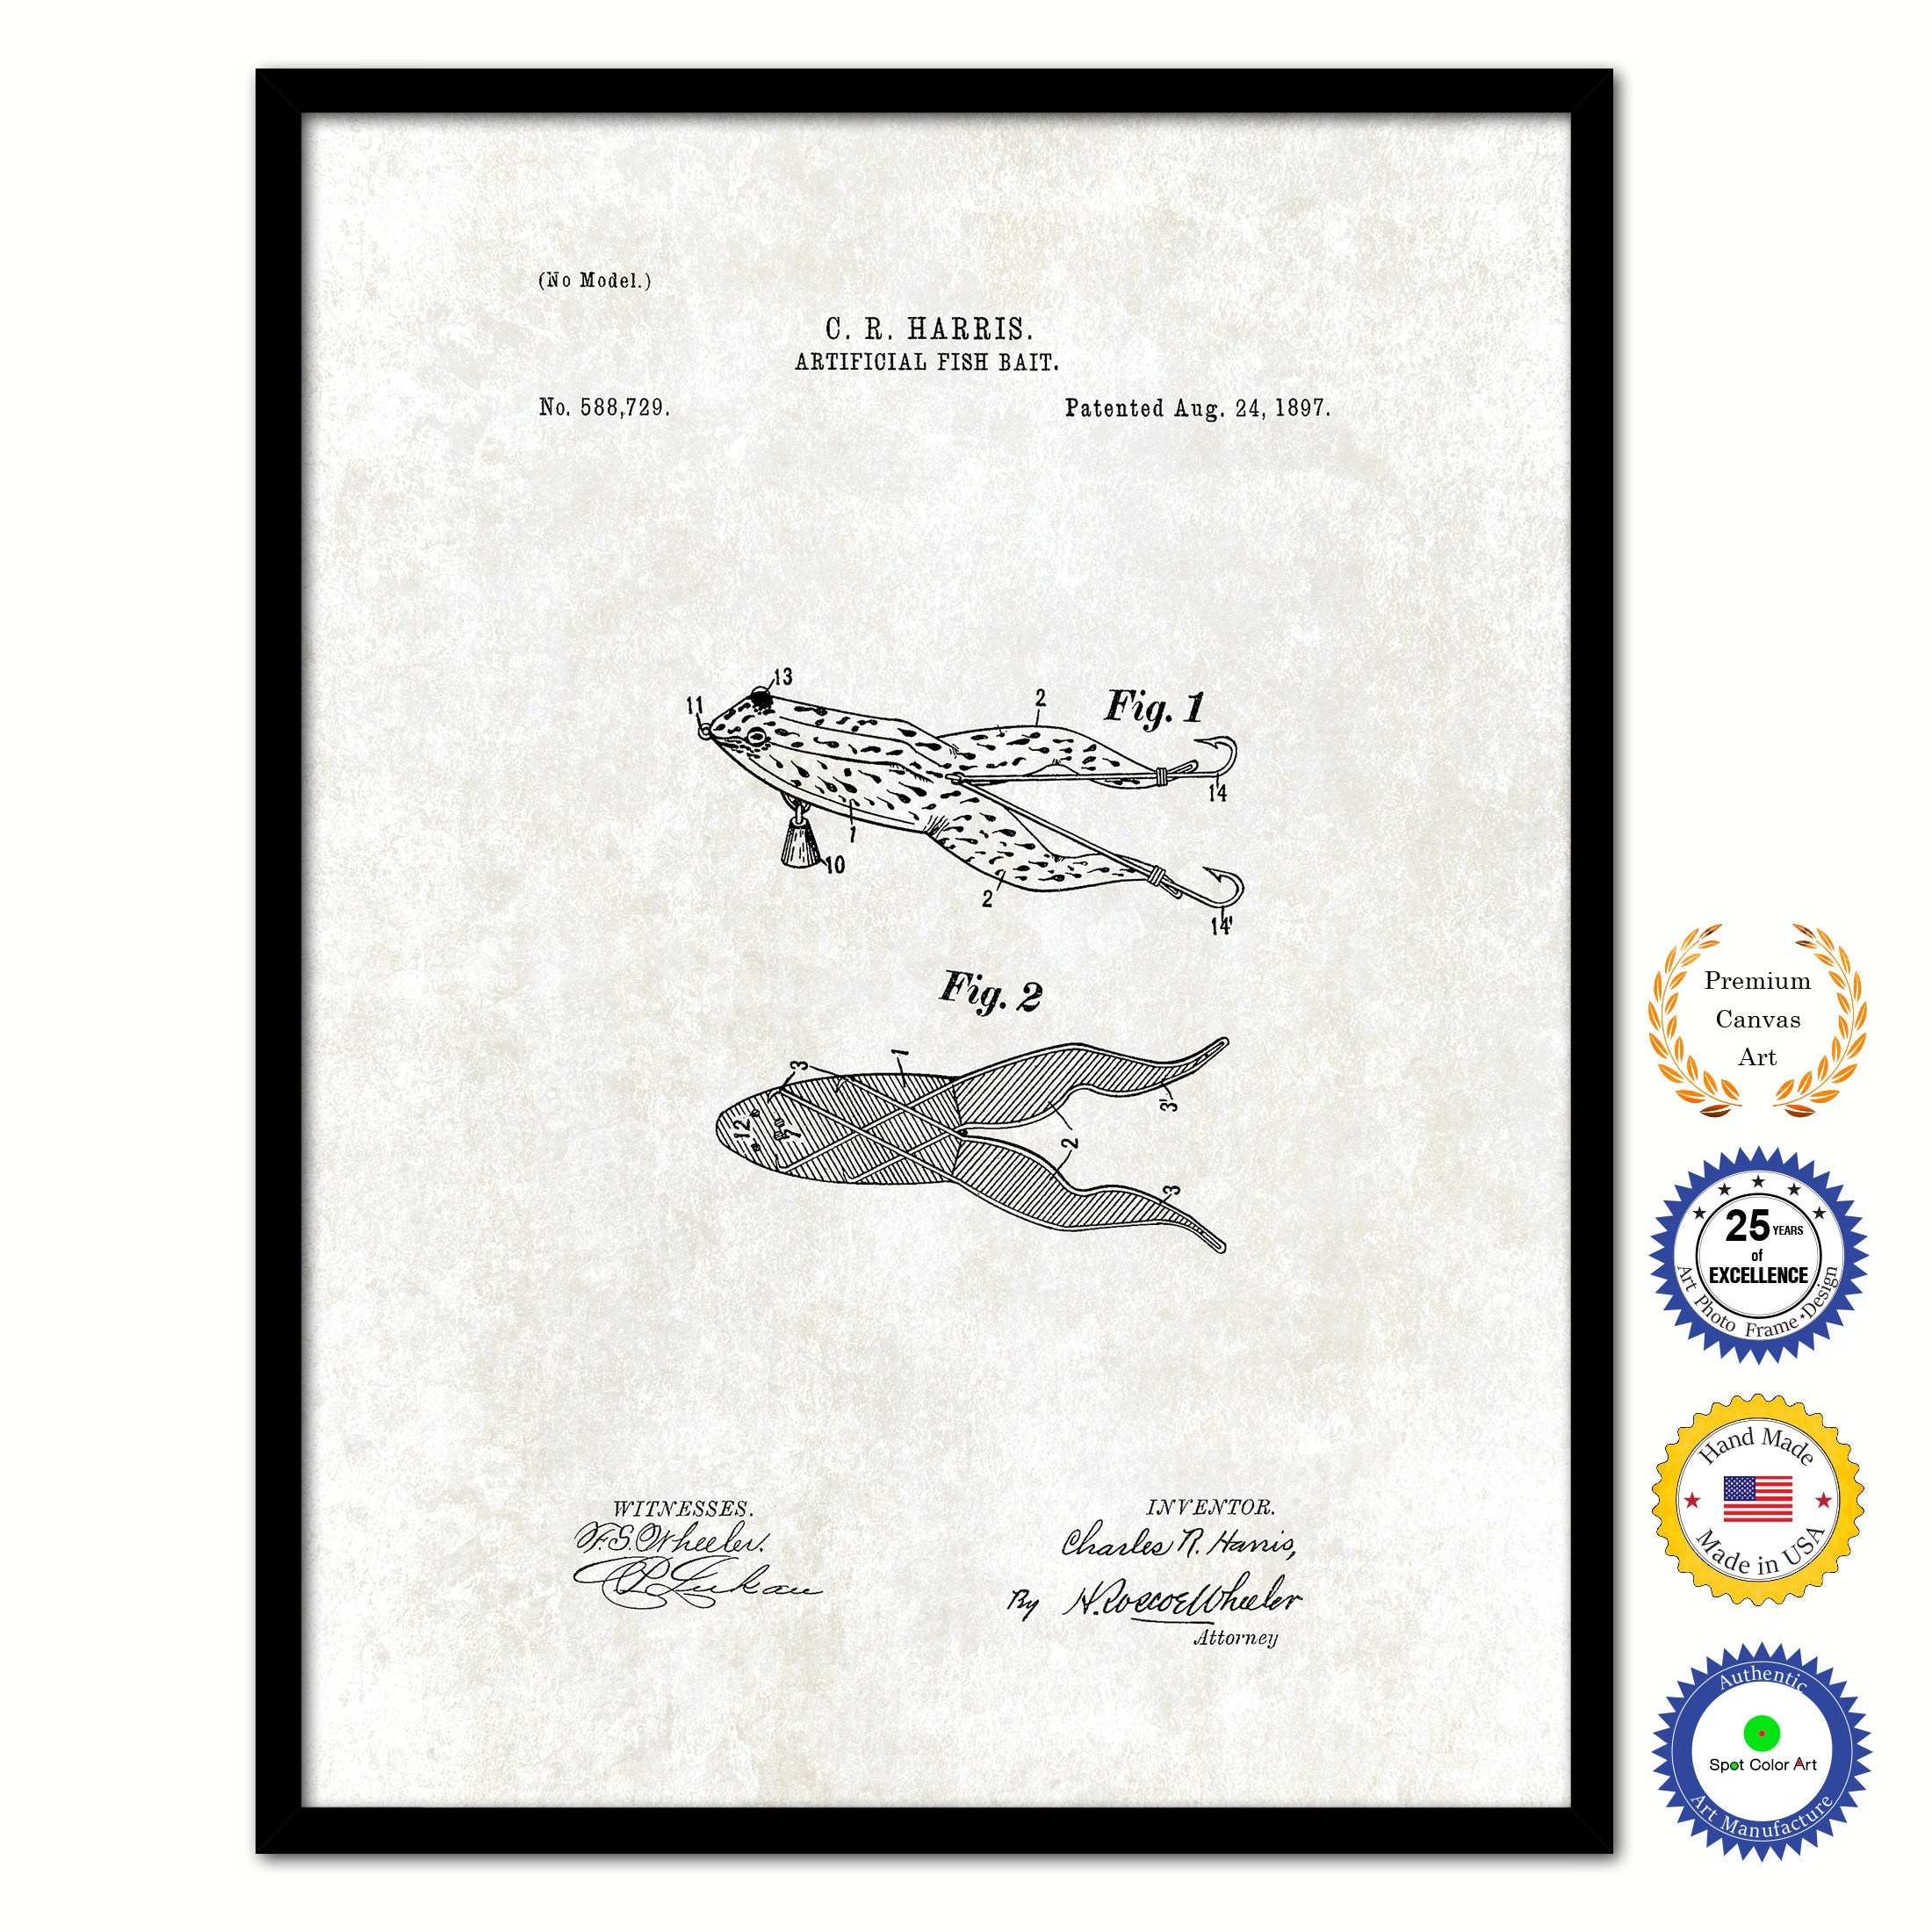 1897 Fishing Artificial Fish Bait Vintage Patent Artwork Black Framed Canvas Print Home Office Decor Great for Fisherman Cabin Lake House